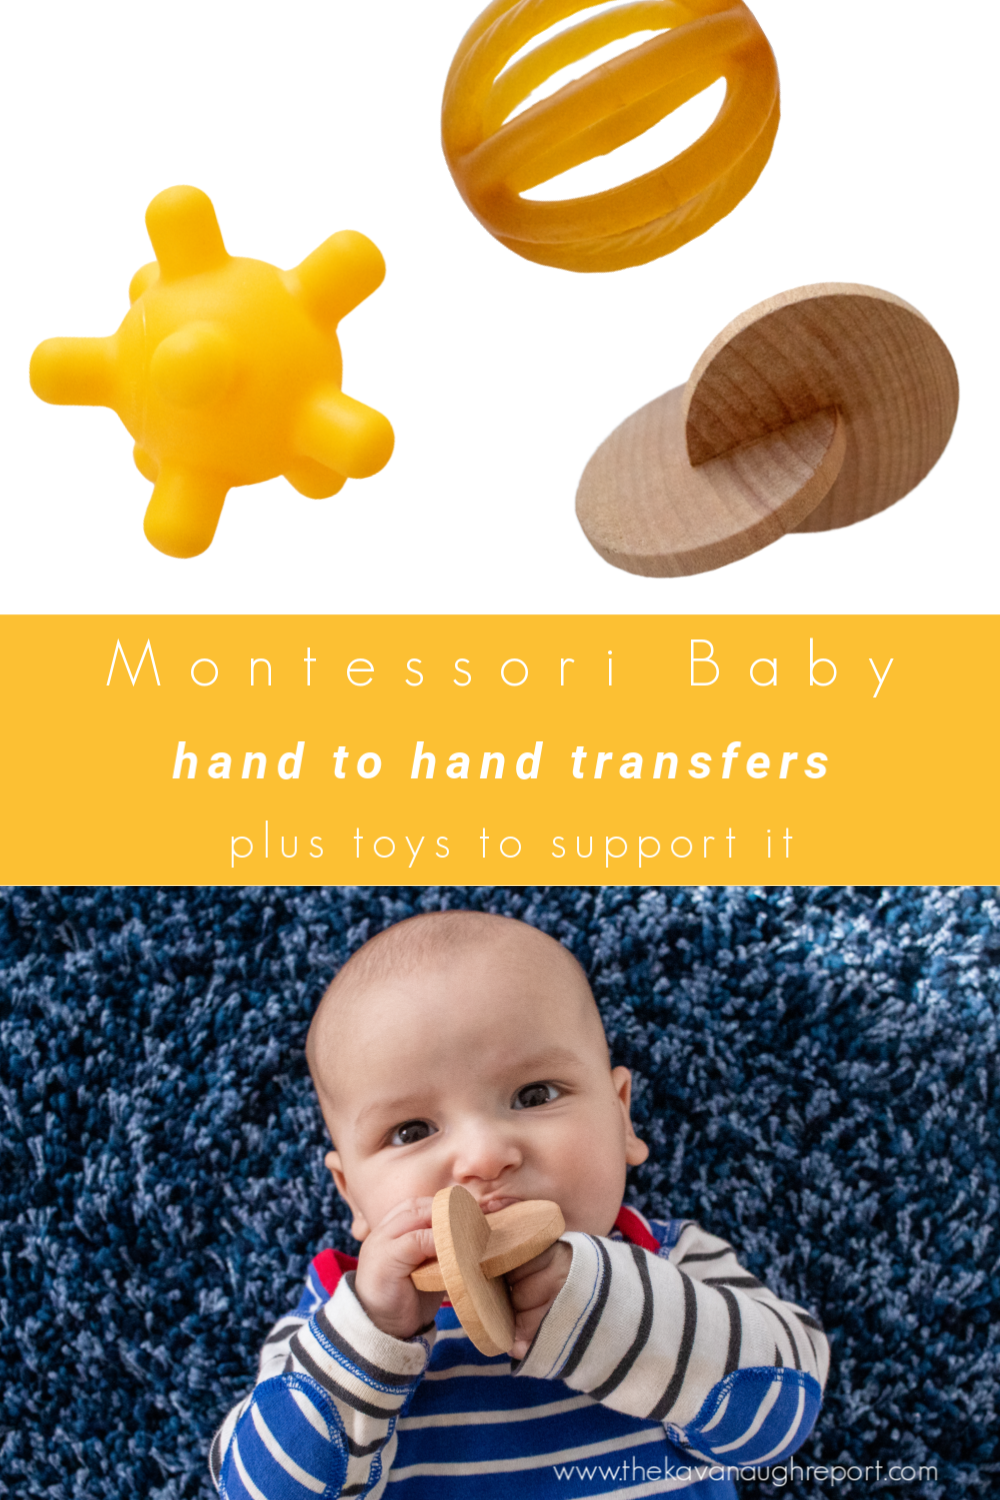 Observing hand-to-hand transfers and 4 months old, and some toys that can be used to support that new baby milestone